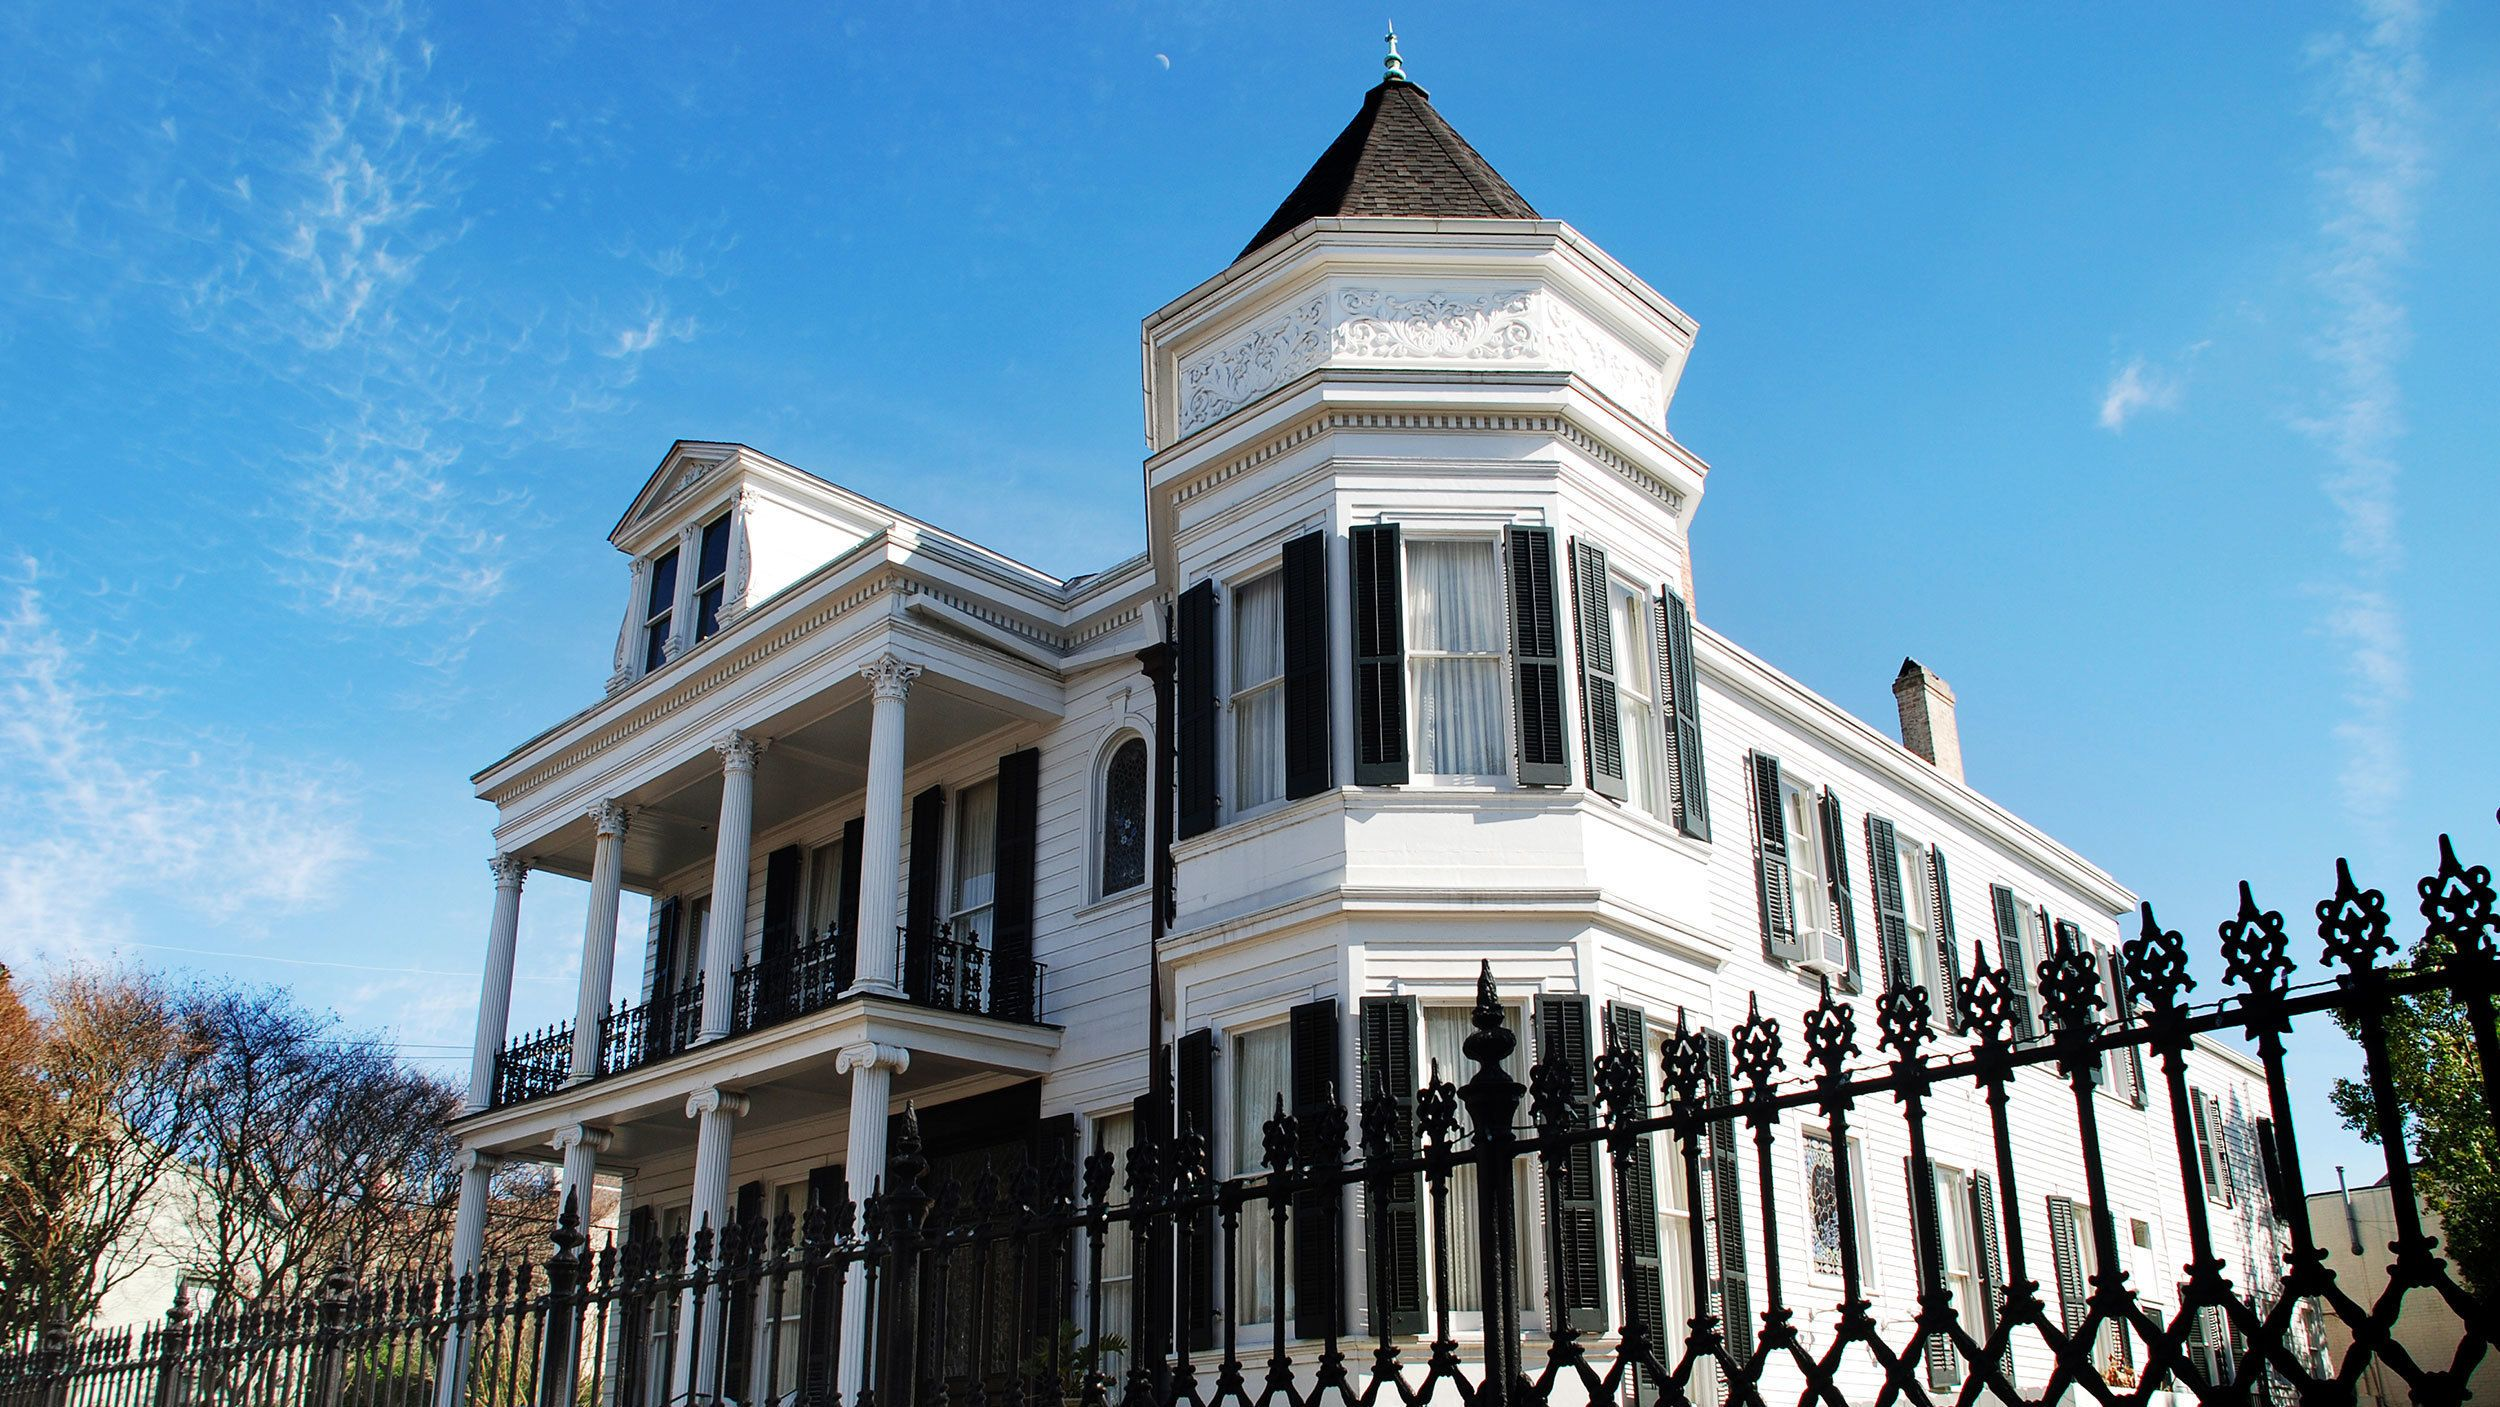 beautiful mansion in Garden District of New Orleans